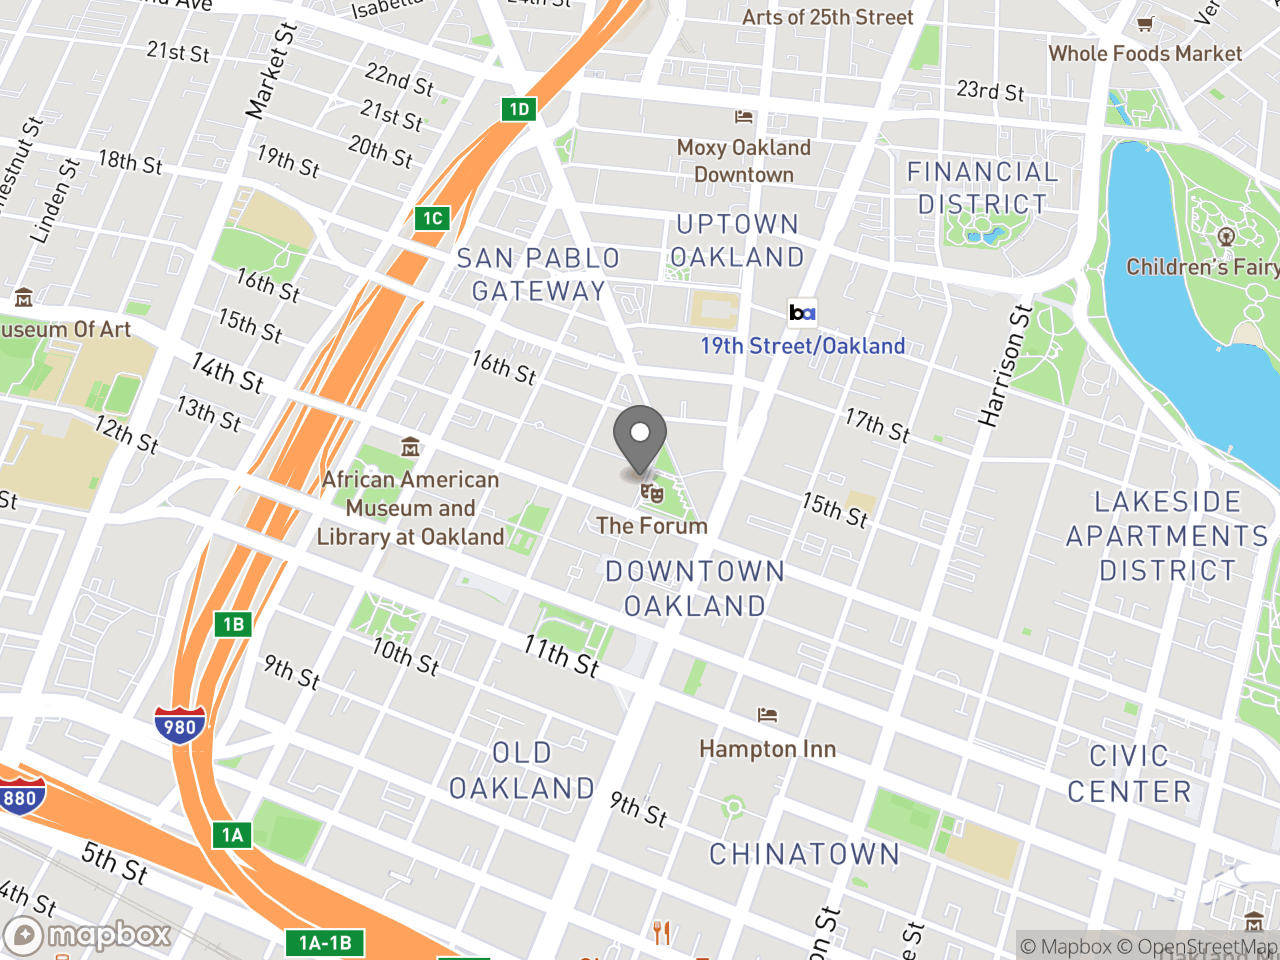 Map location for 7-2-18 PAAC Meeting Agenda, located at 1 Frank H Ogawa Plaza in Oakland, CA 94612